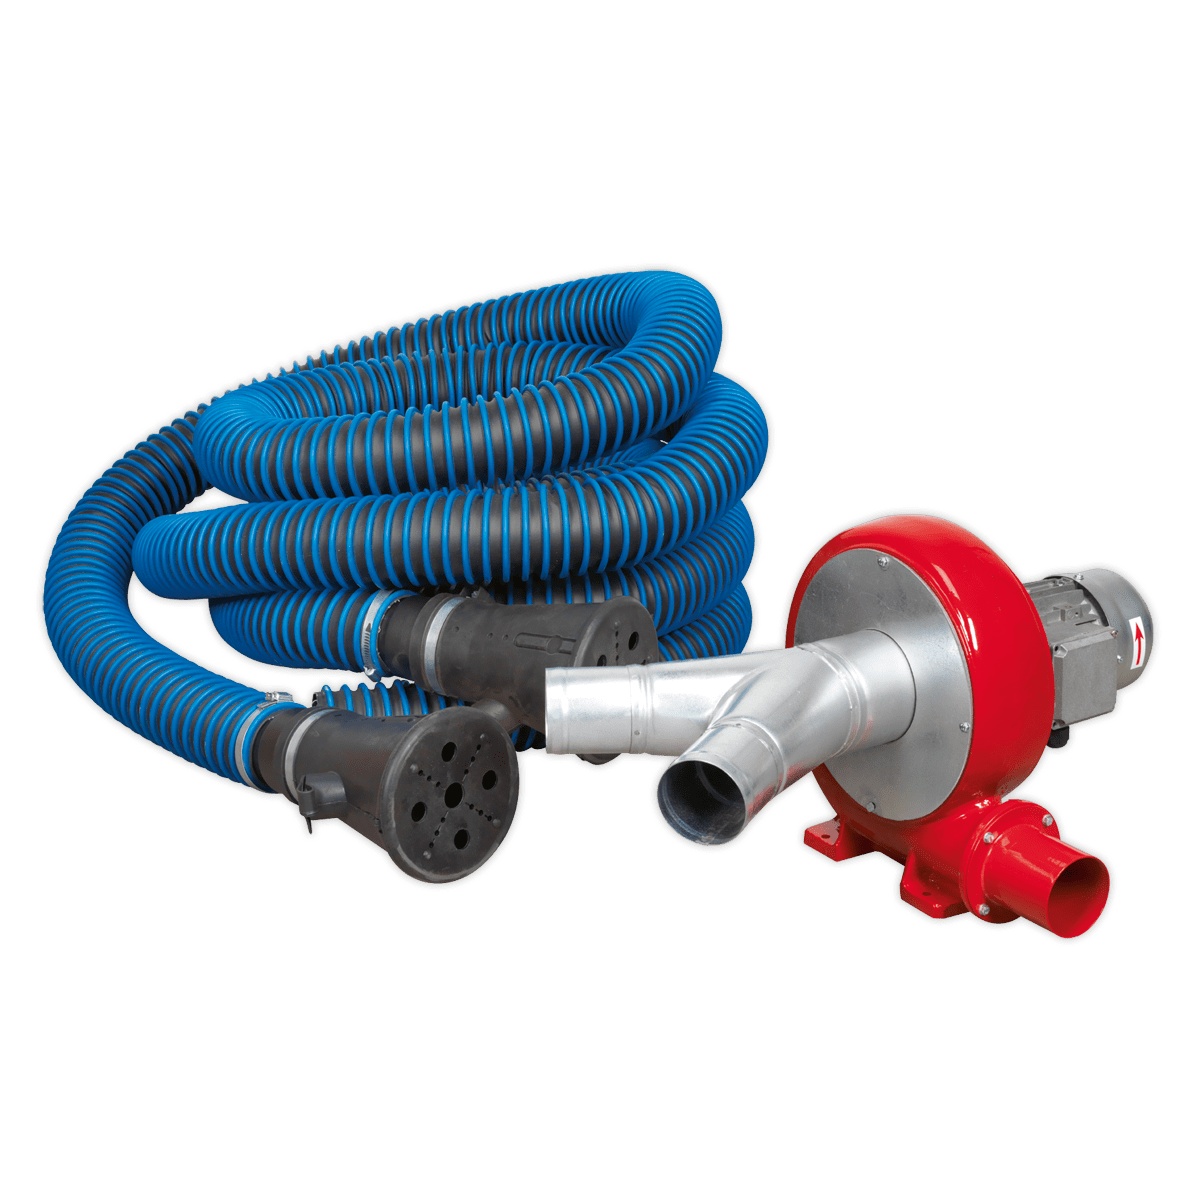 370w exhaust fume extraction system twin duct